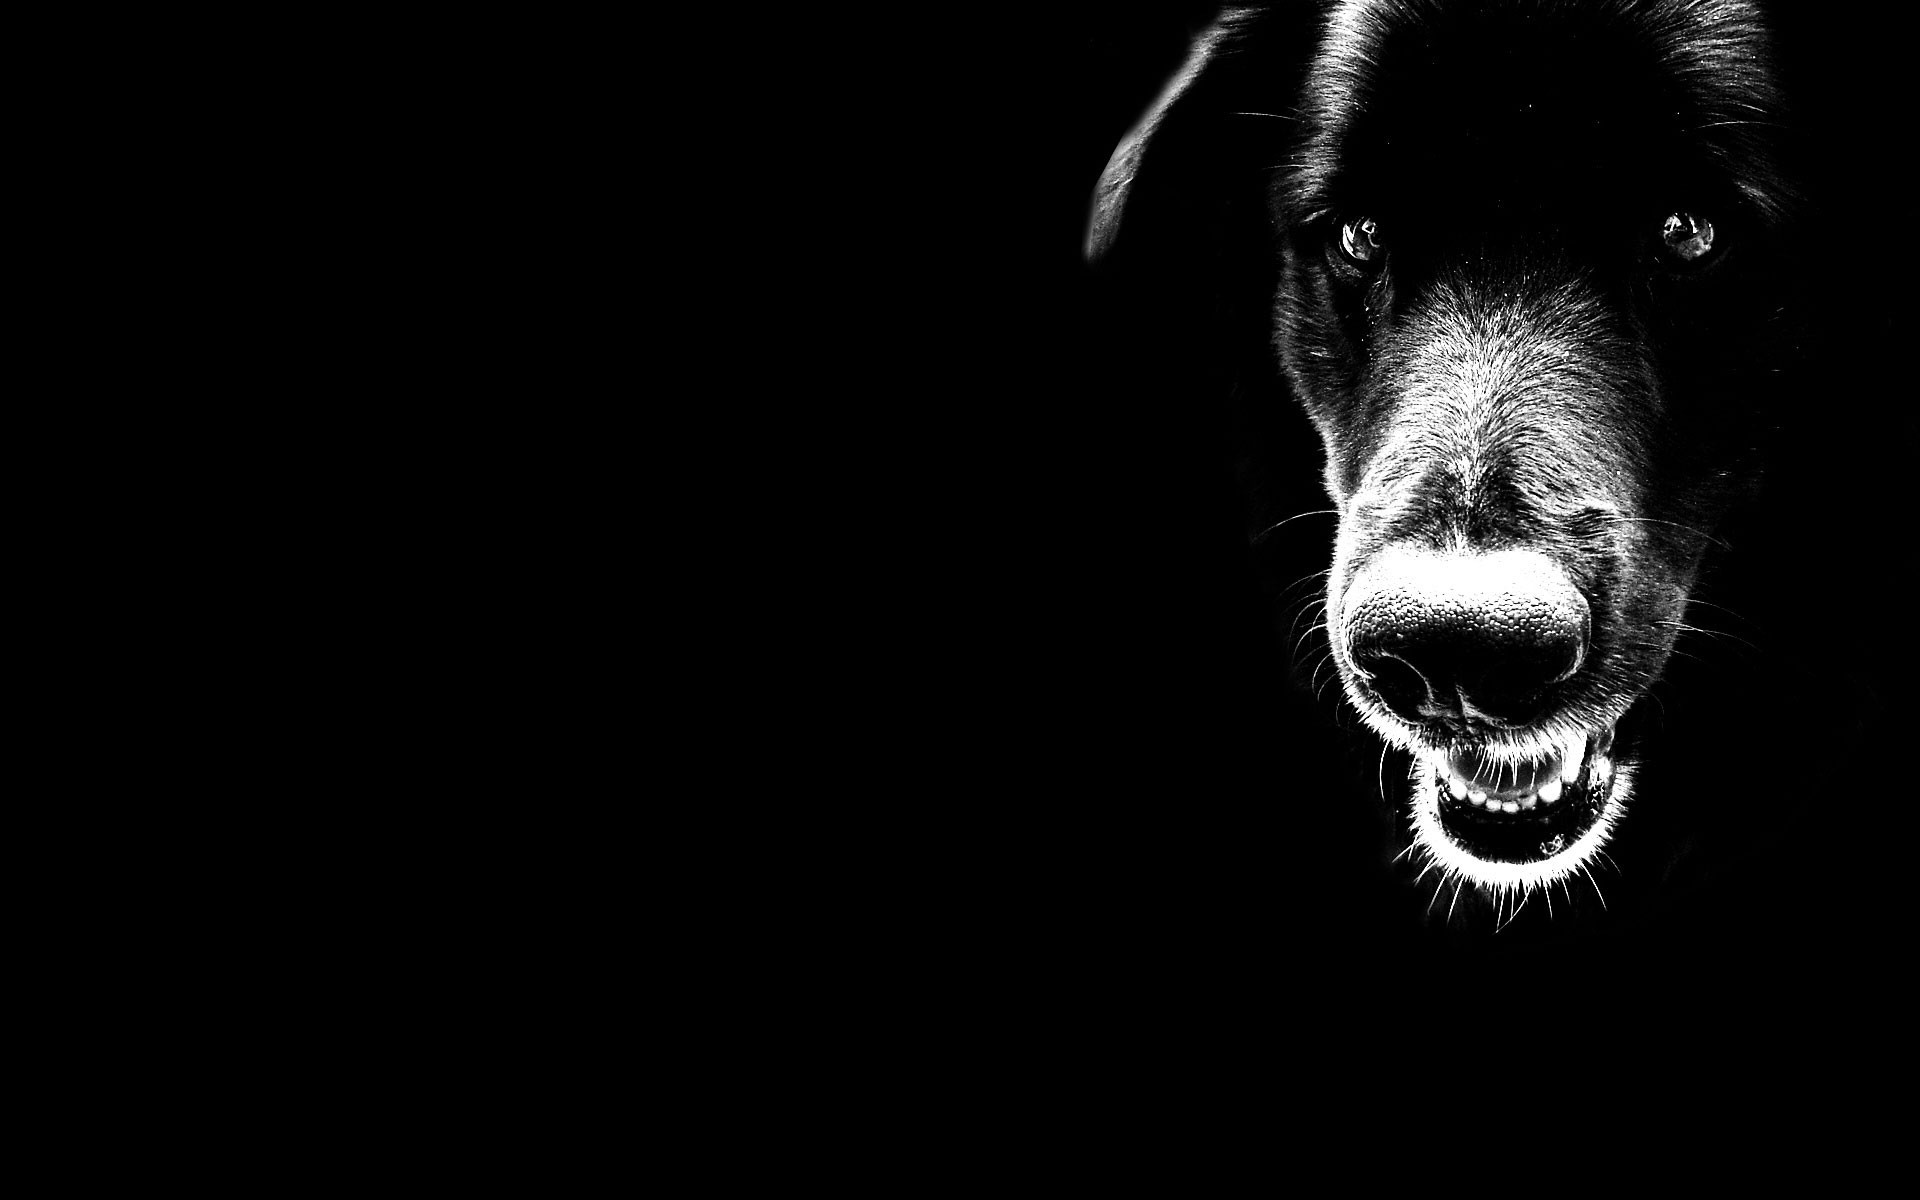 1920x1200 black dog wallpaper download. black and white hd wallpaper pictures 3D